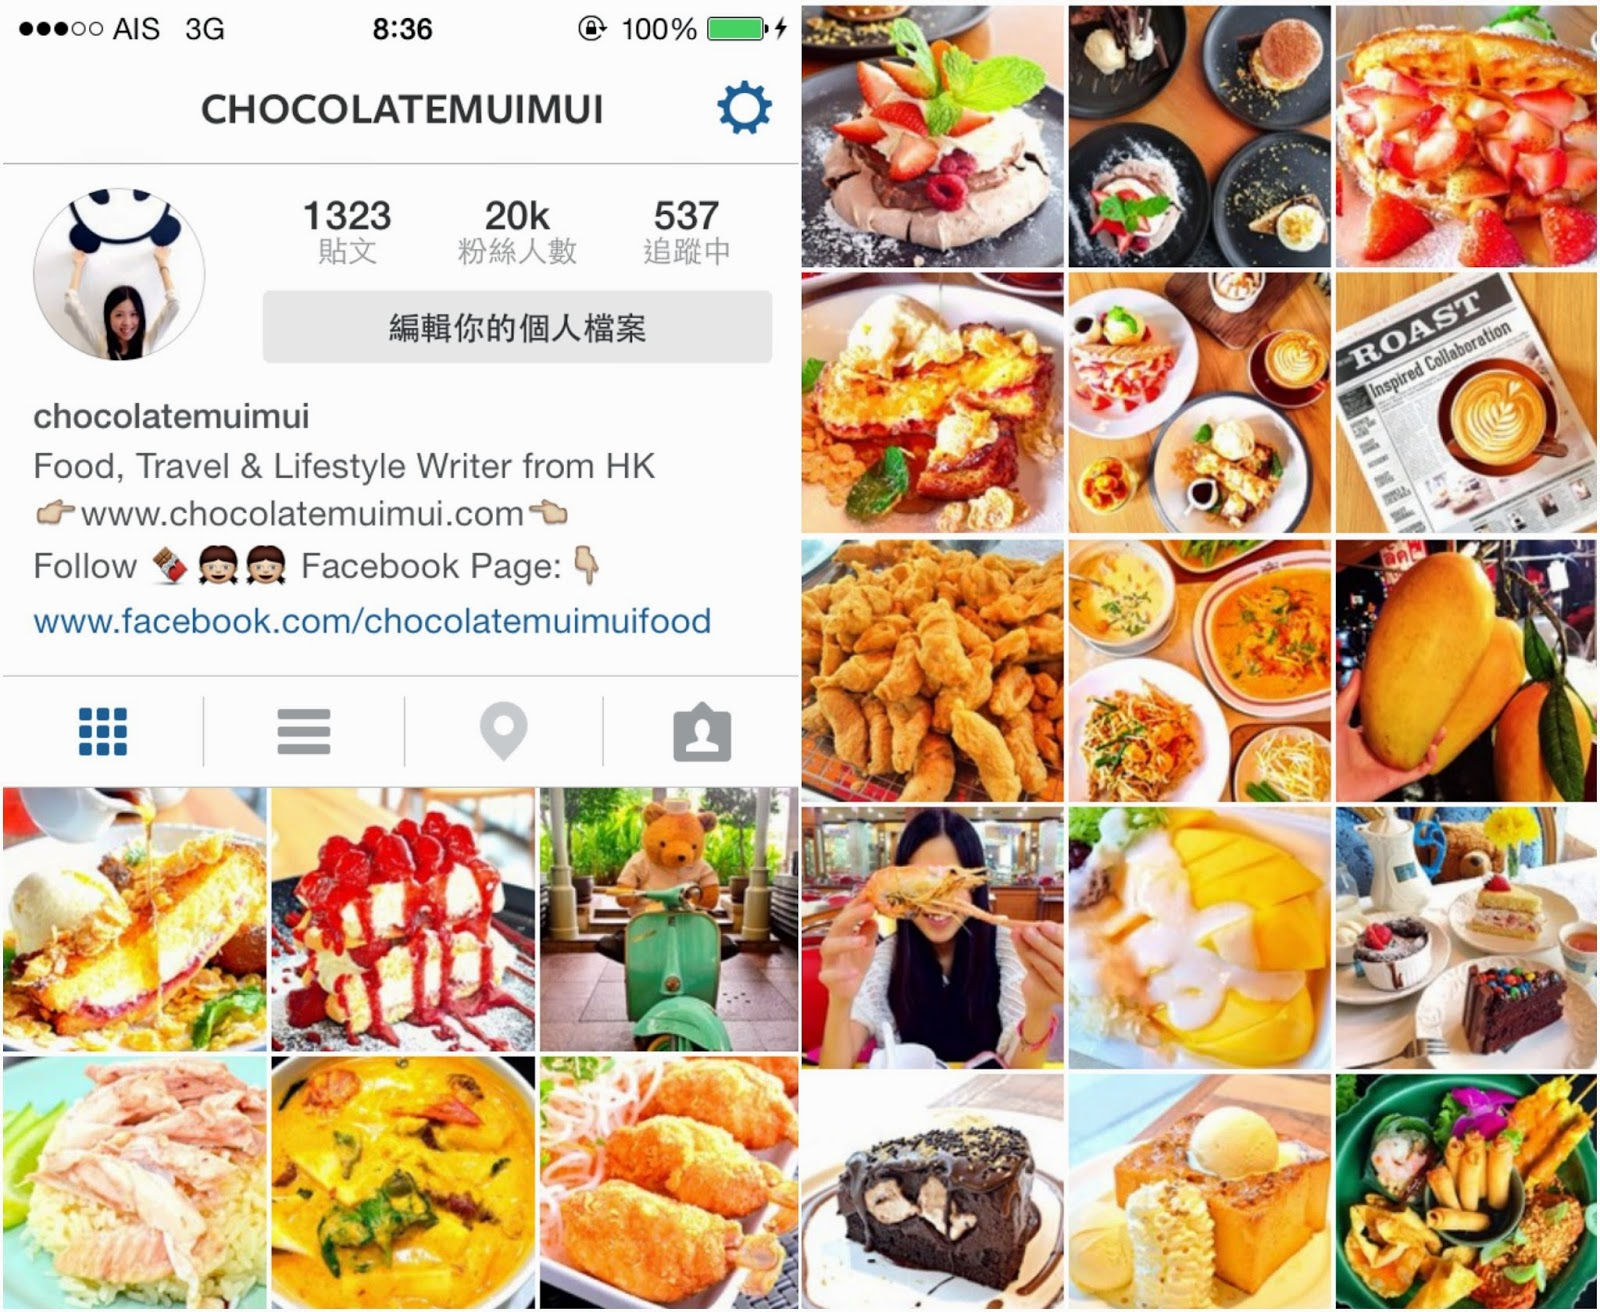 Instagram @Chocolatemuimui